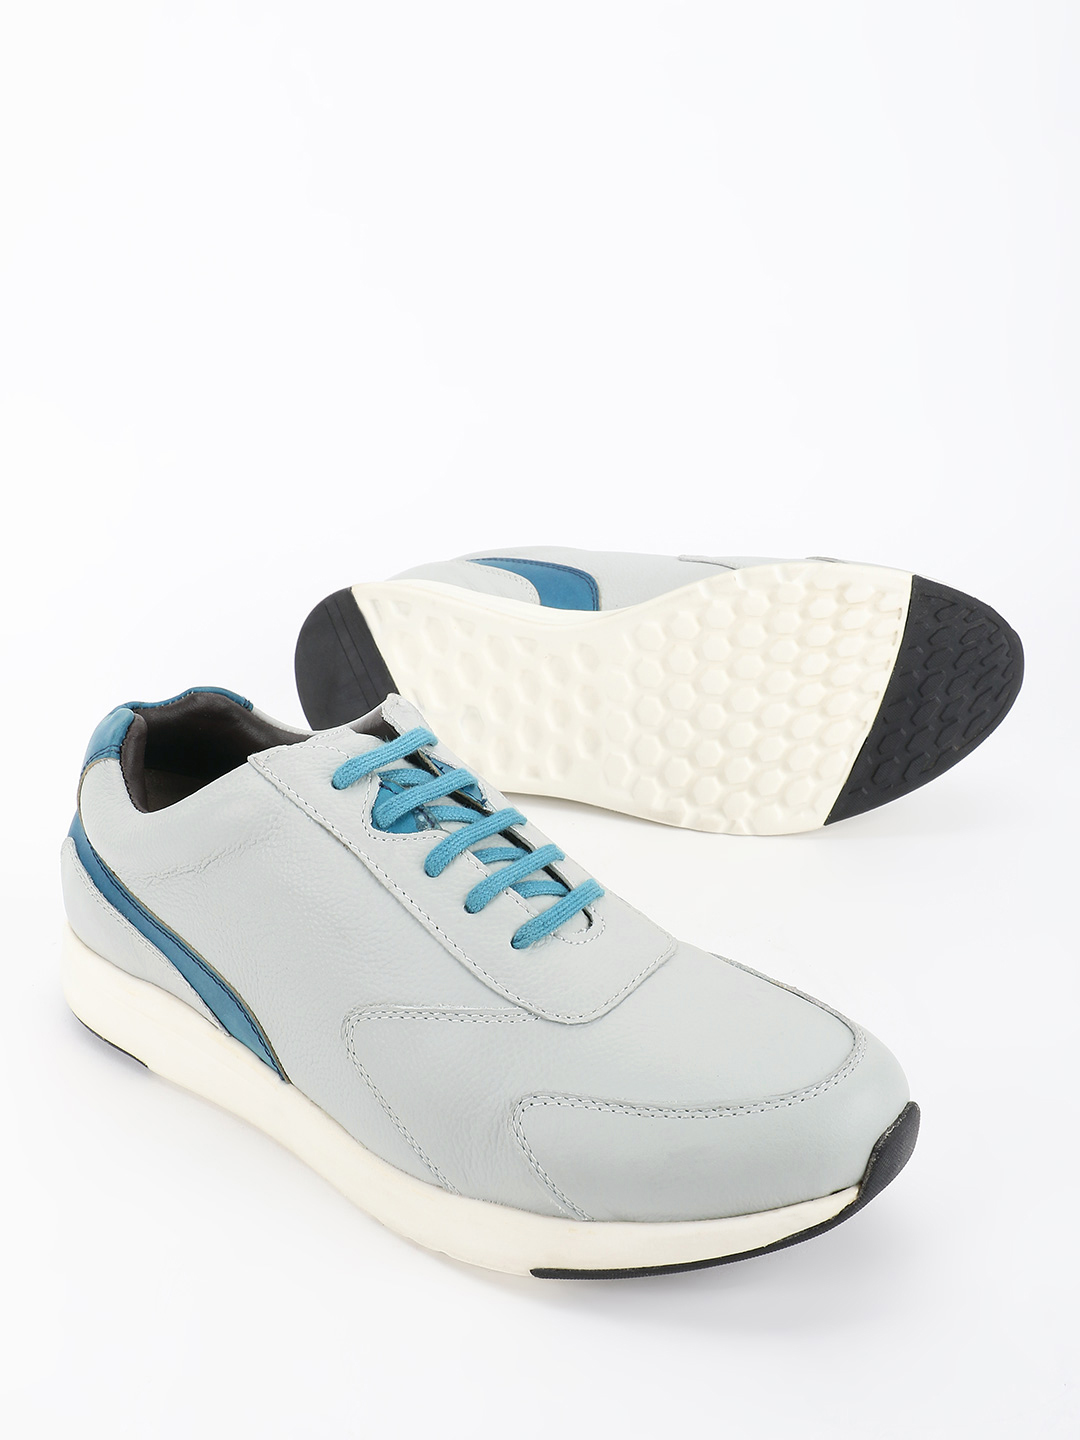 YOHO Grey Colour Block Panel Leather Sneakers 1